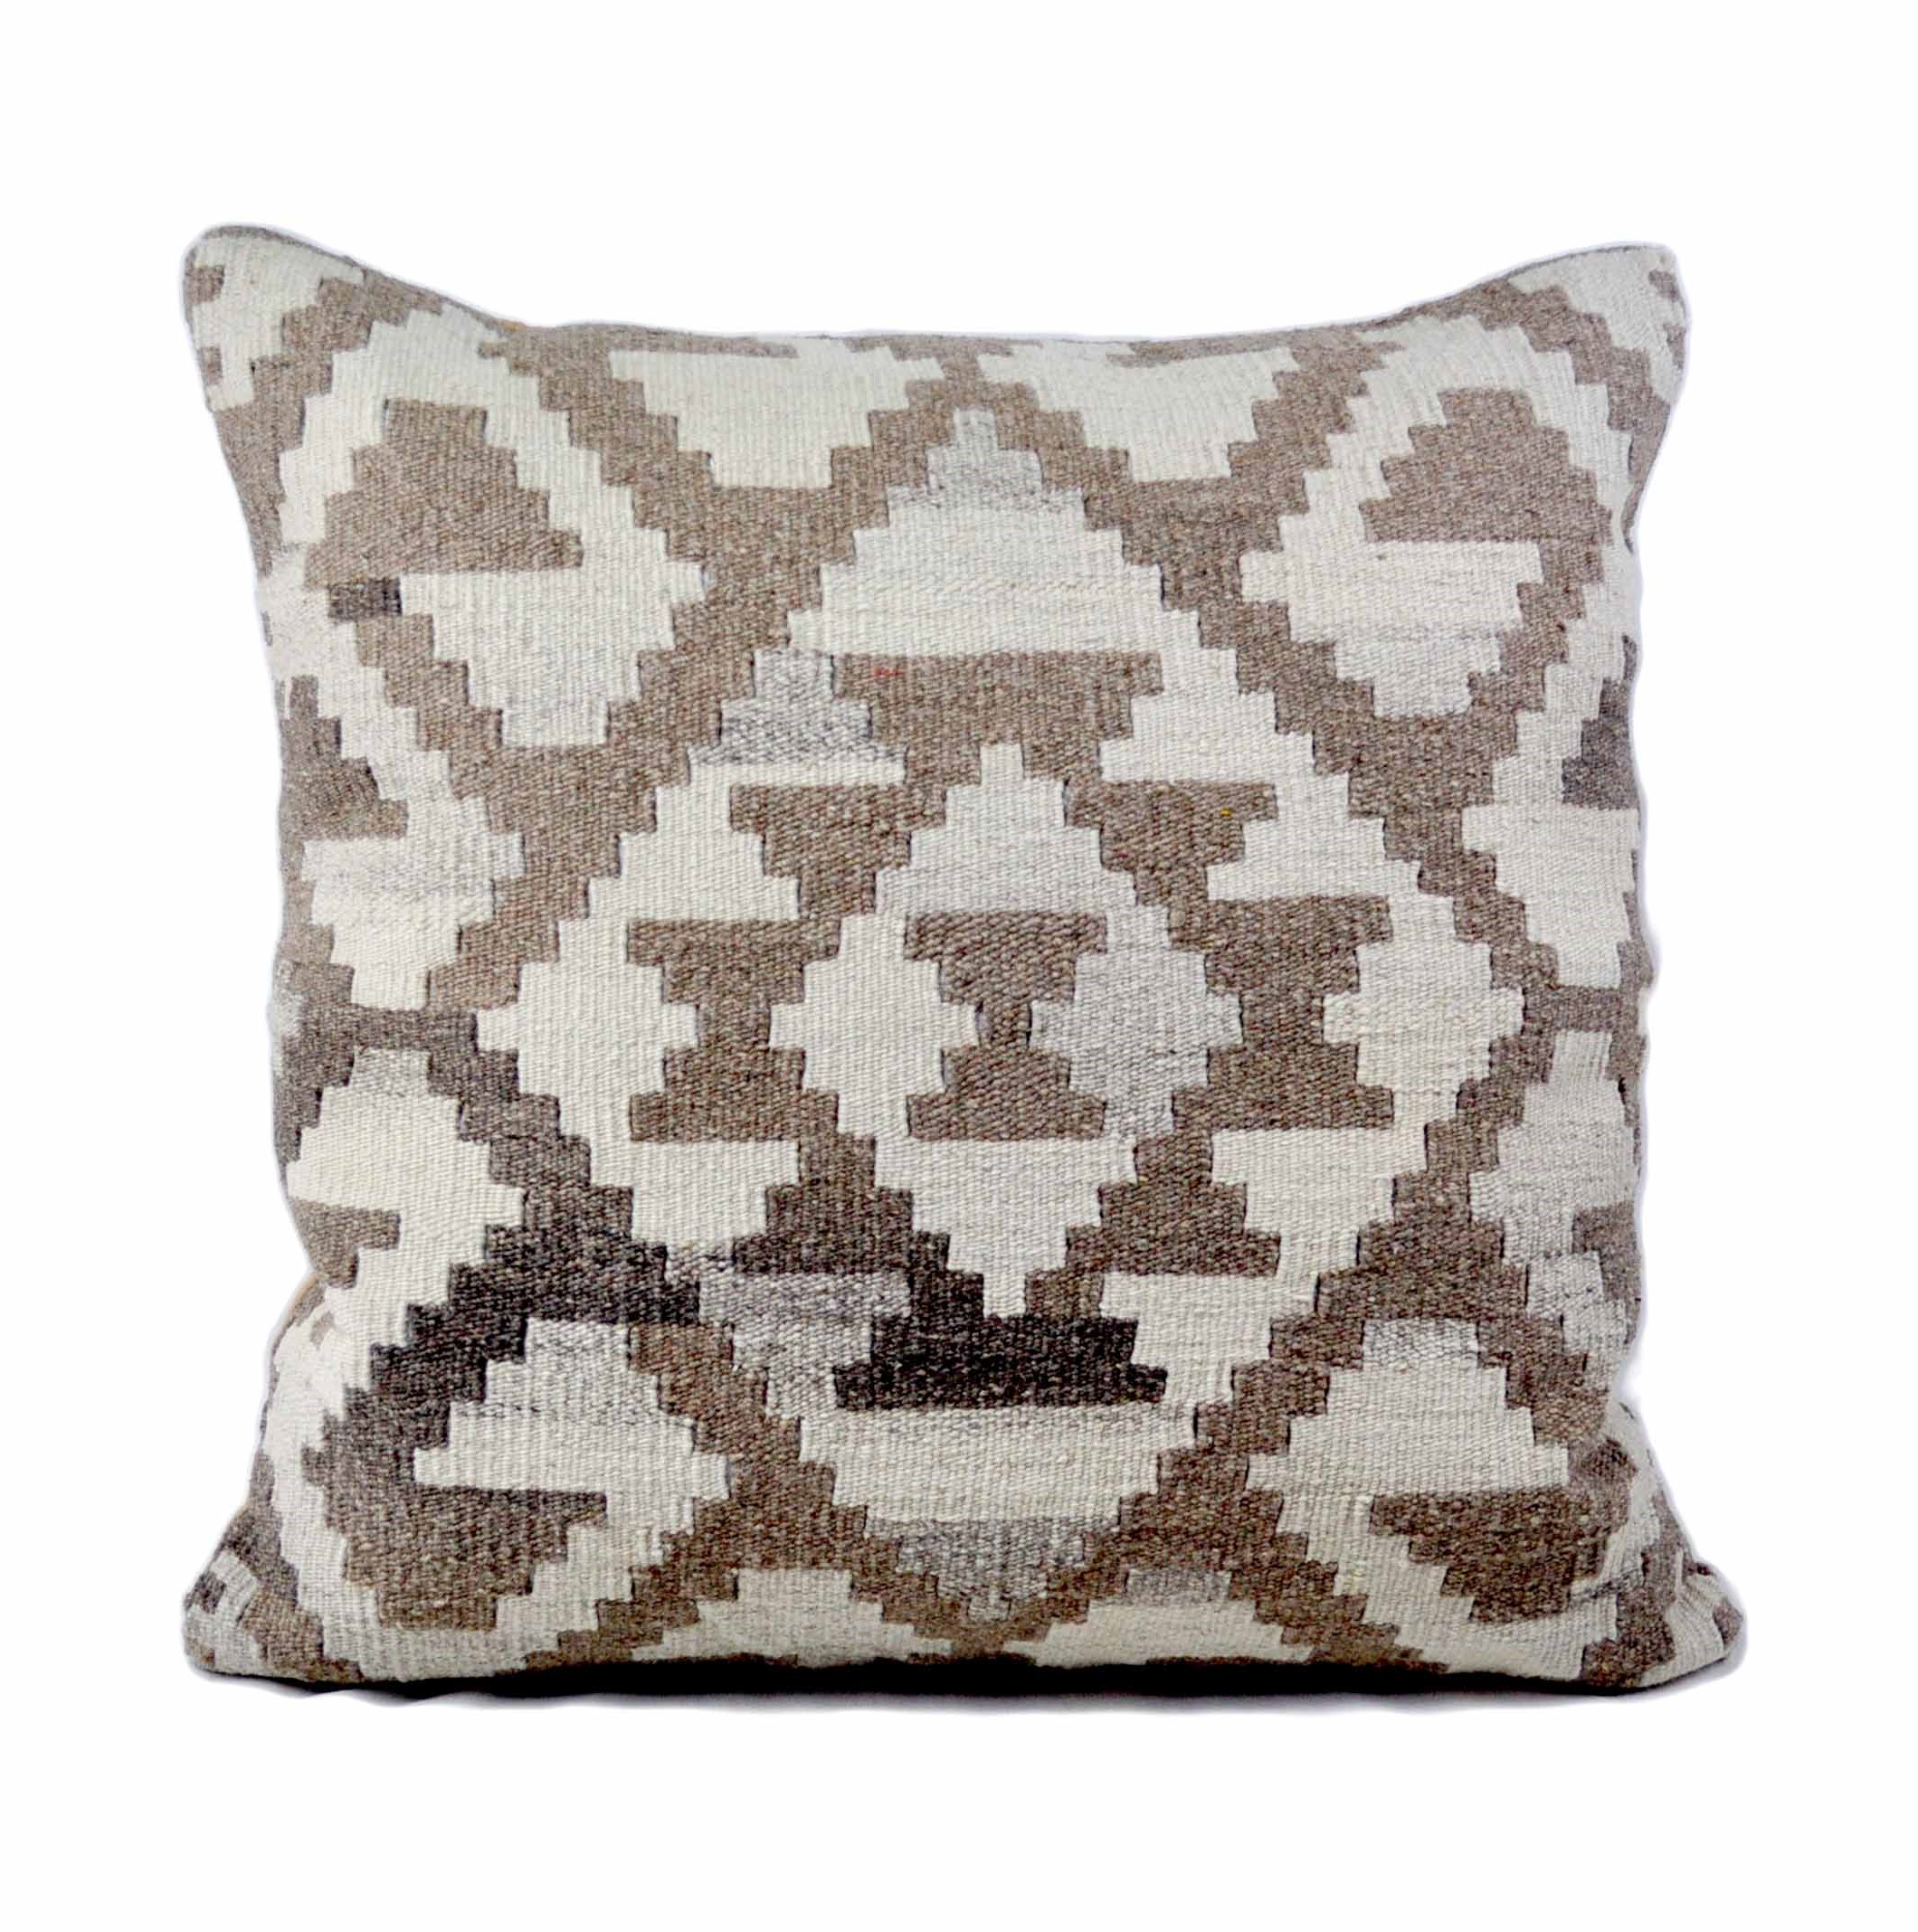 24×24 Hand-woven Wool Kilim Pillow Cover 12981032